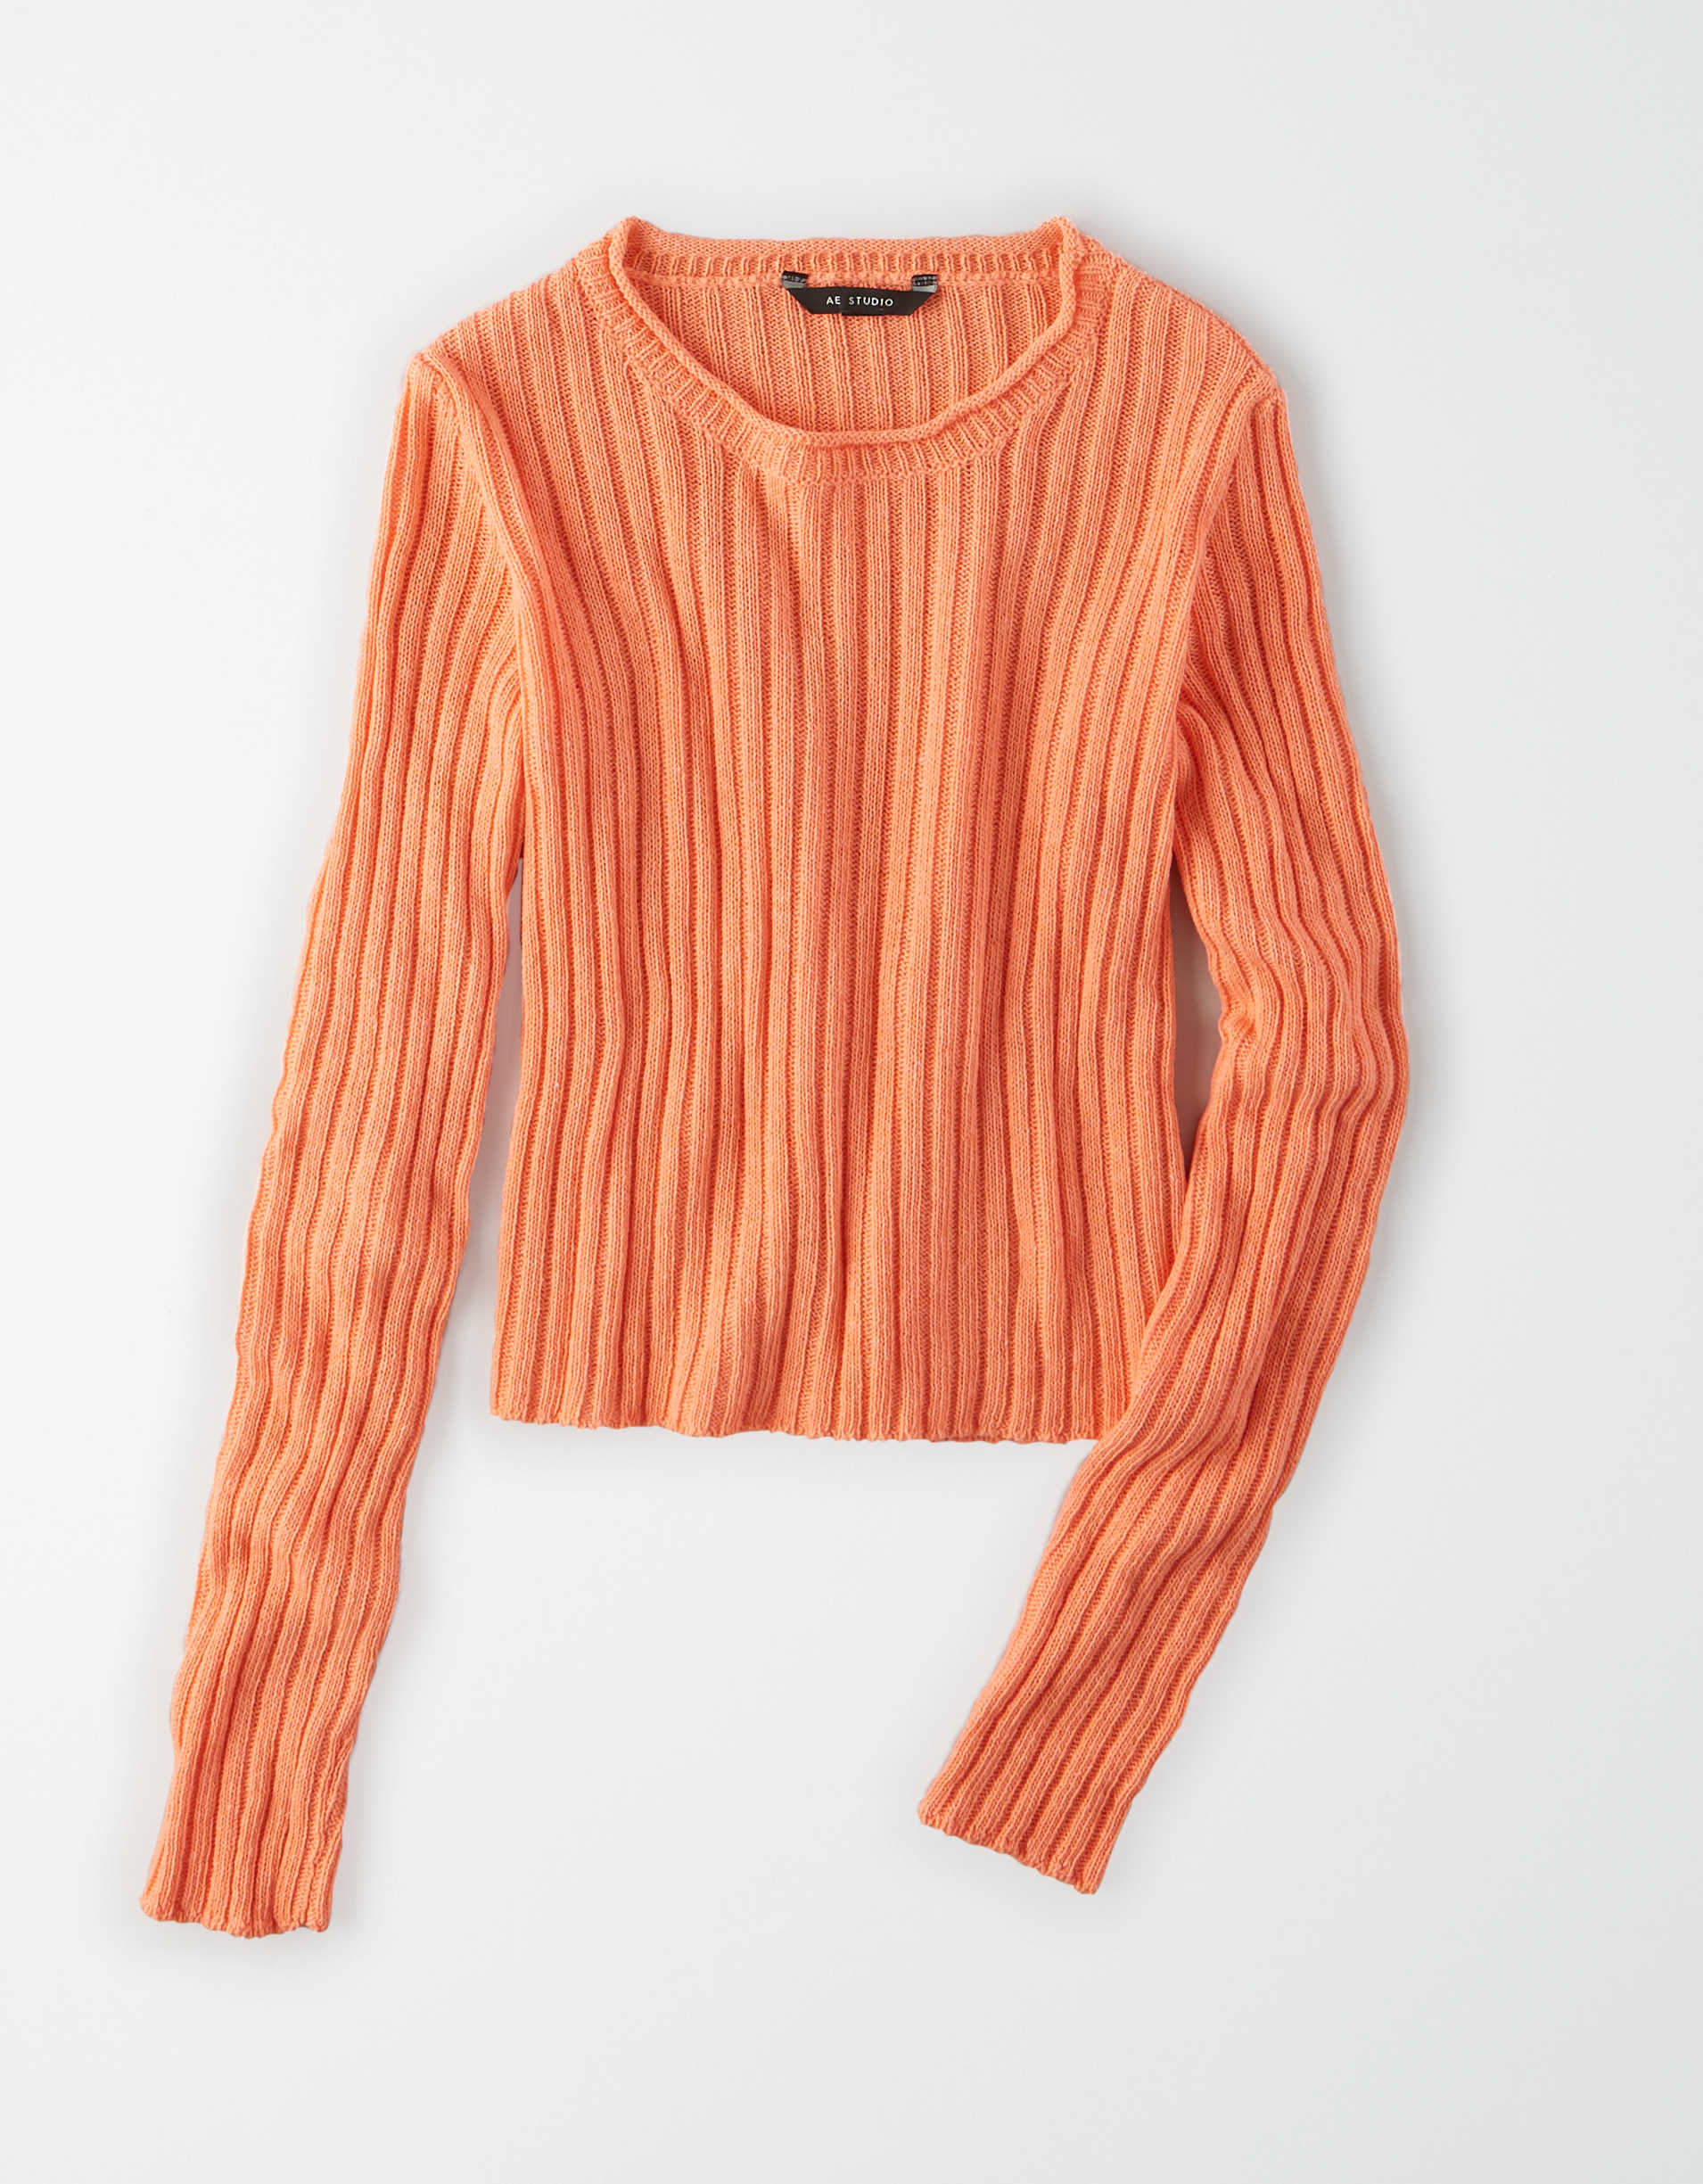 AE Studio Cropped Crew Neck Sweater